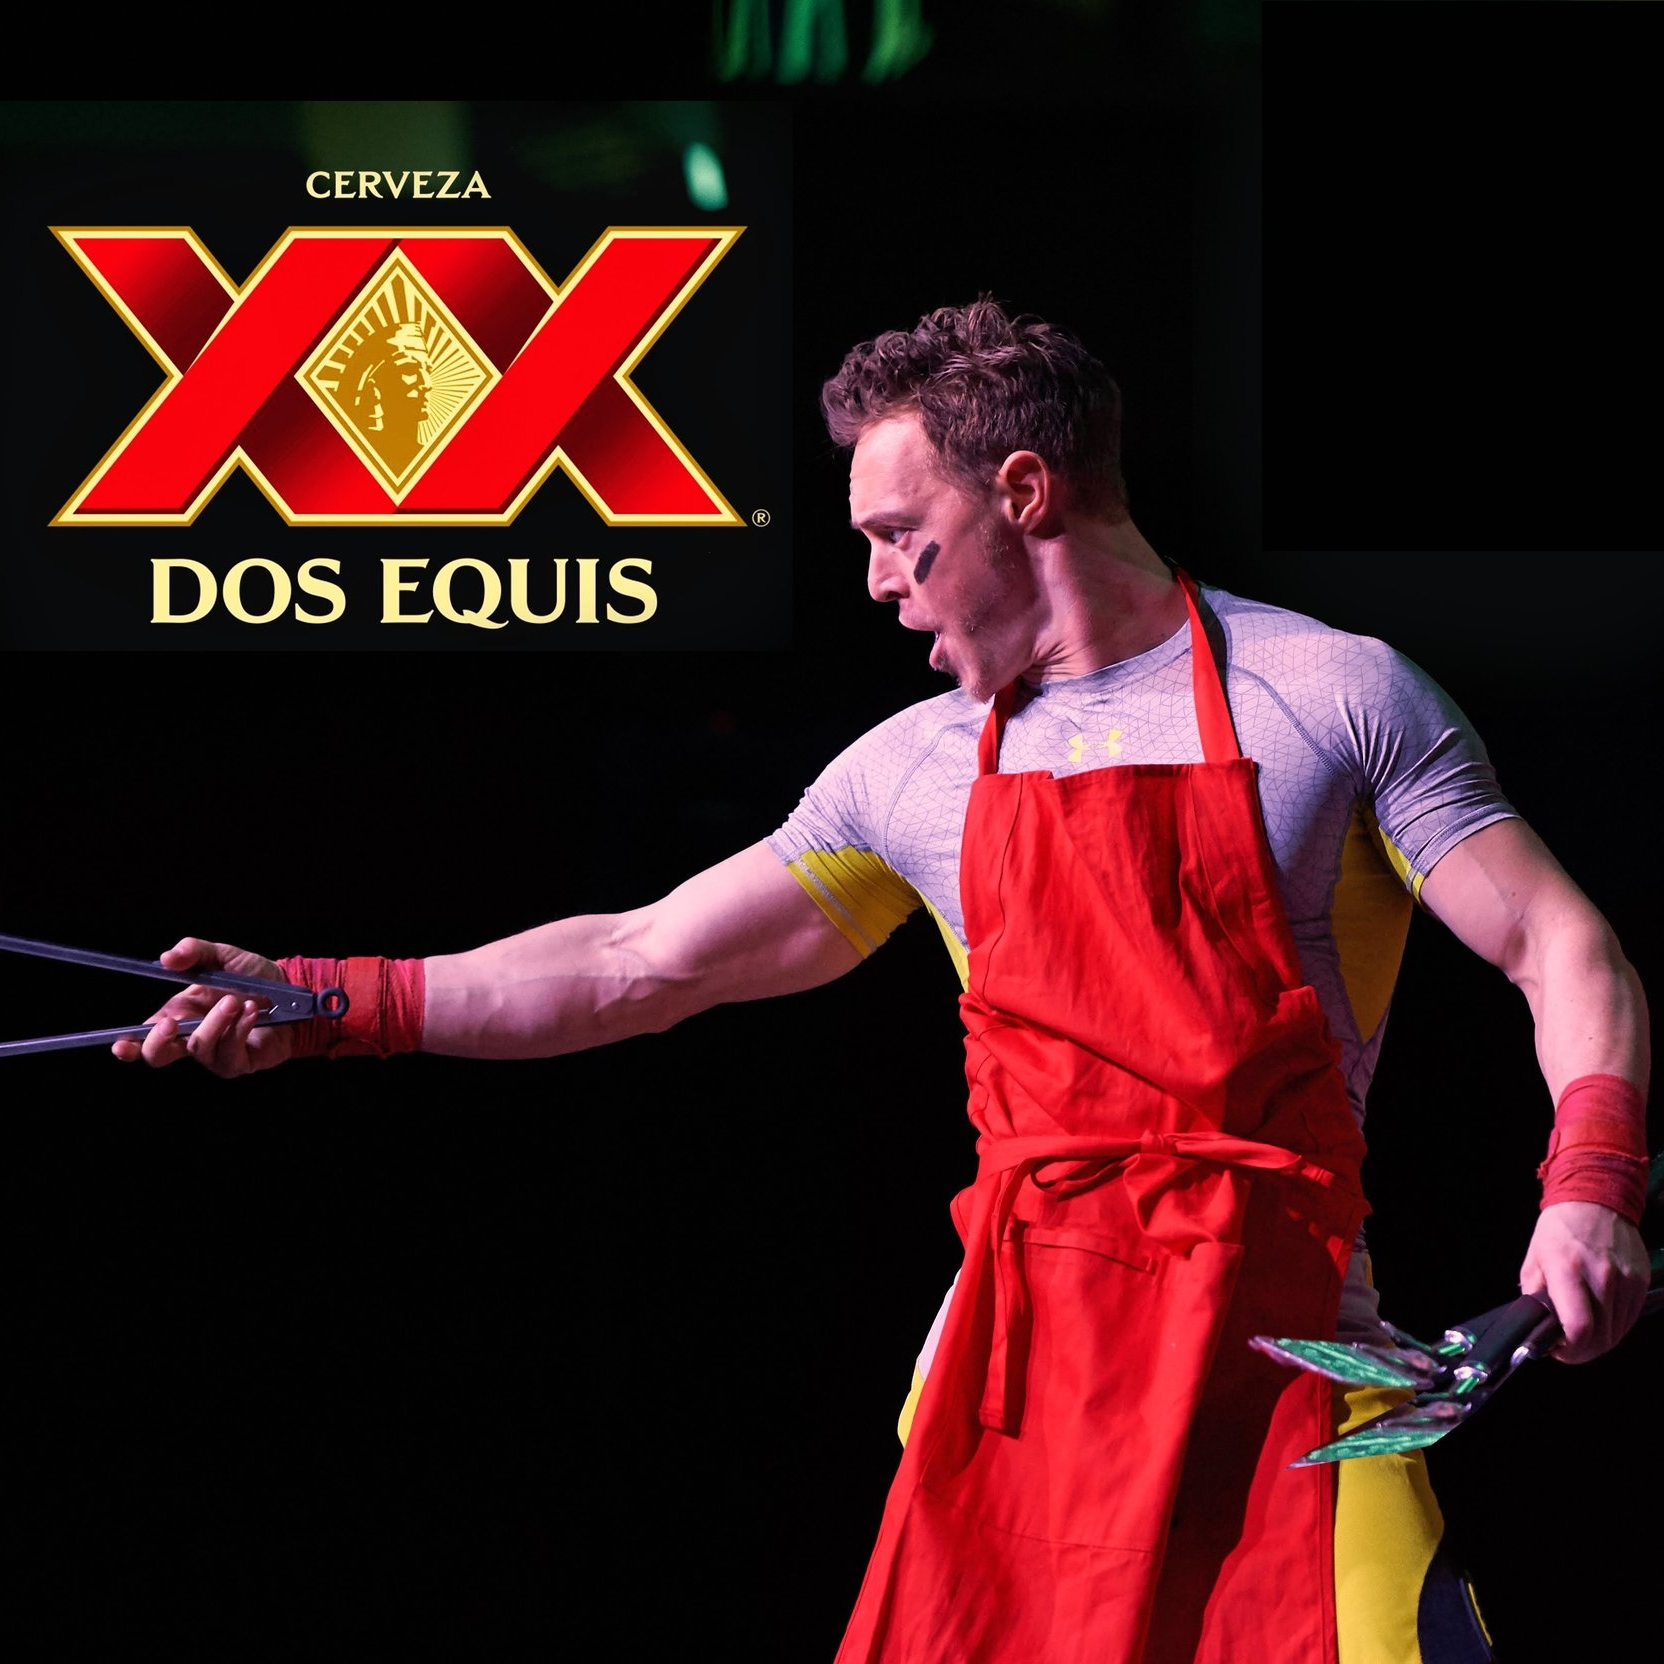 An unusual juggling act for a tailgate-themed Dos Equis event